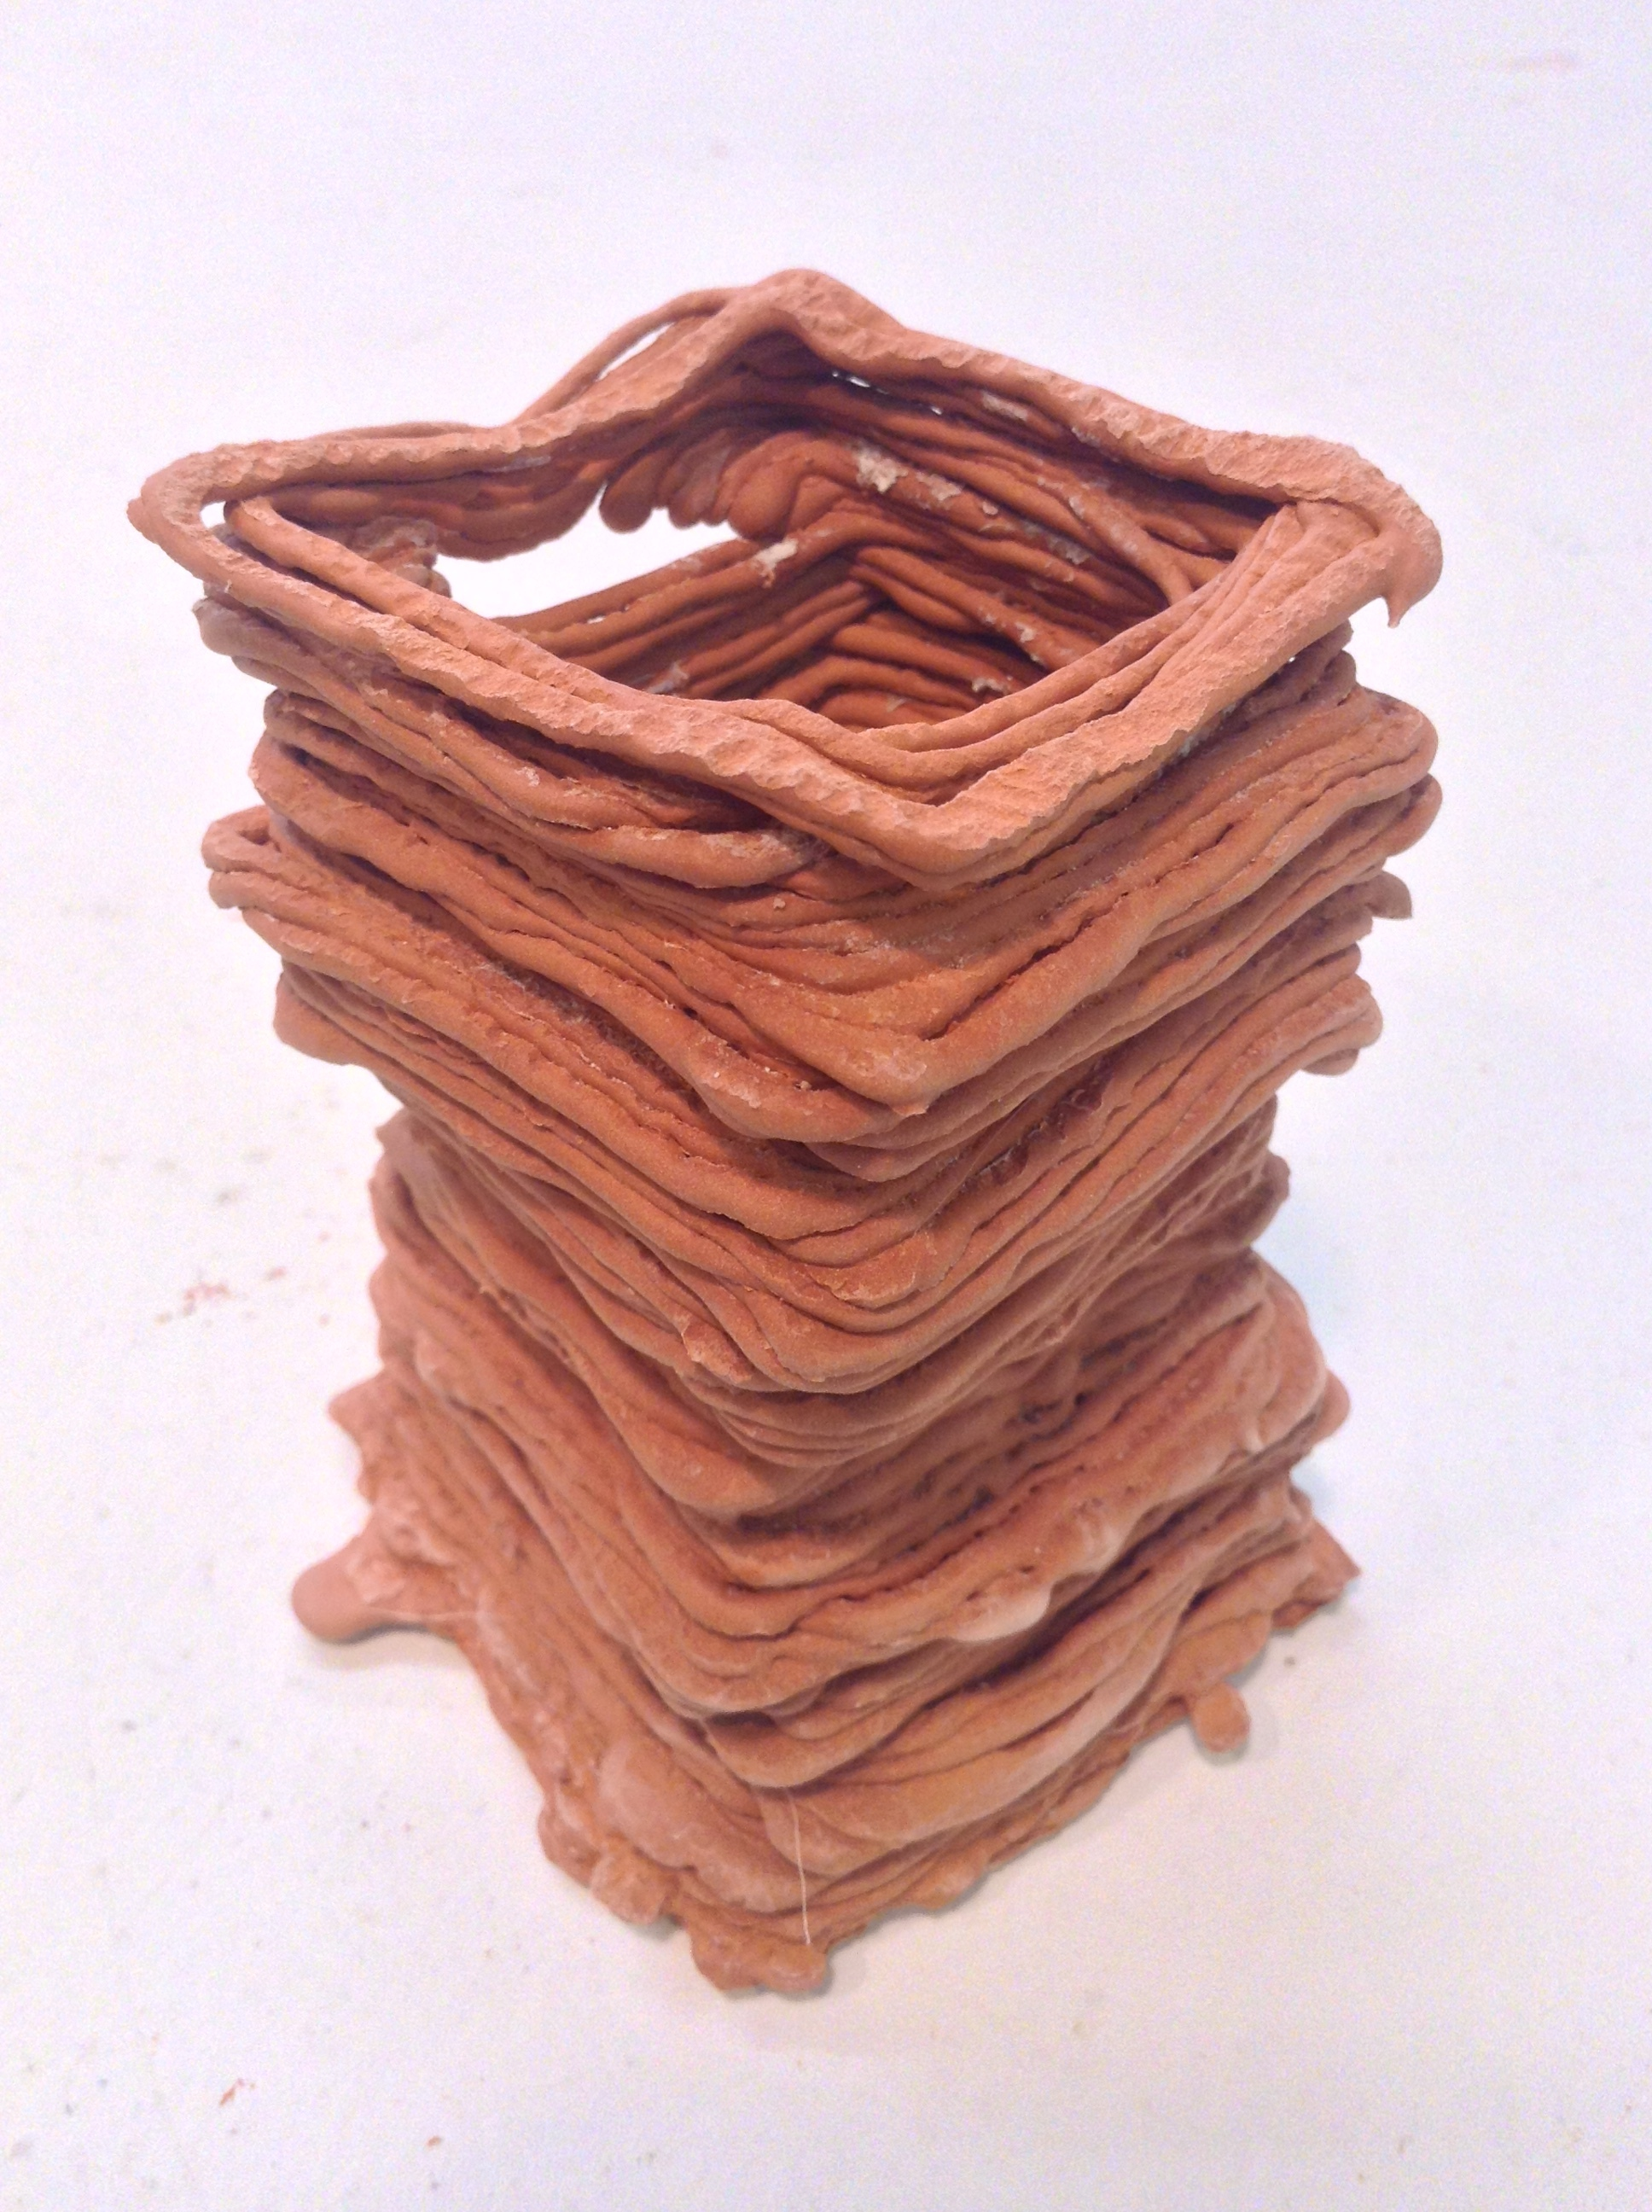 A tall stack of slip-trailed layers. Low-fire clay, cone 05 oxidation, unglazed.